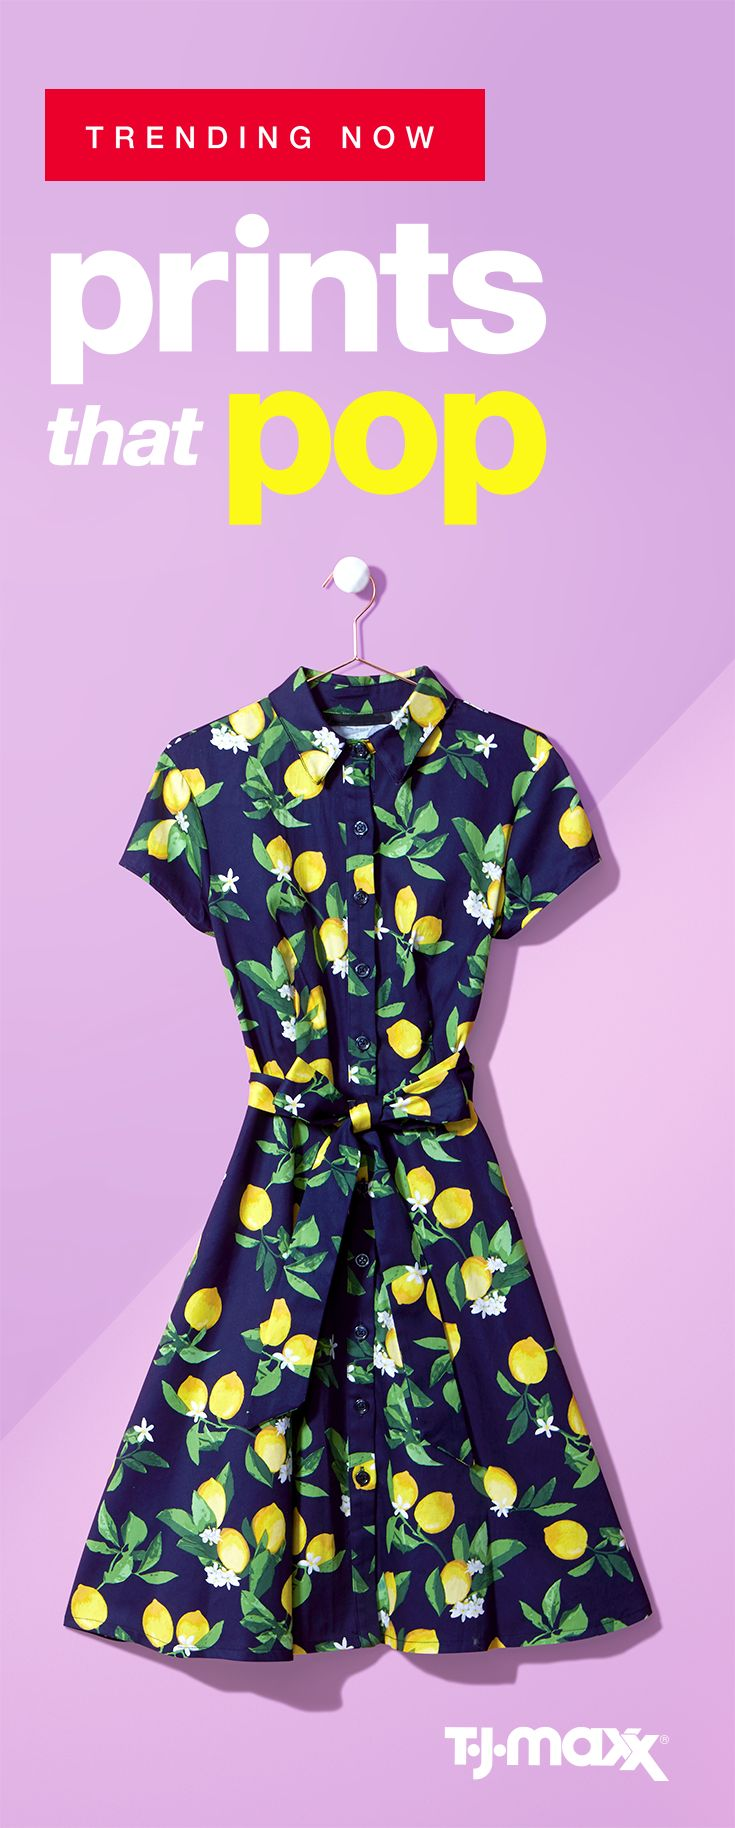 Trending this spring? Bold pops of color and graphic prints. Look to add in personality with graphic shapes like lemons, limes, and florals in bright springy hues like yellow, pink, and deep green. Go big with a chic statement dress or add a bold patterned handbag or scarf for a subtle way to rock the trend all season long. Shop dresses, prints, and patterns at your local T.J.Maxx and tjmaxx.com